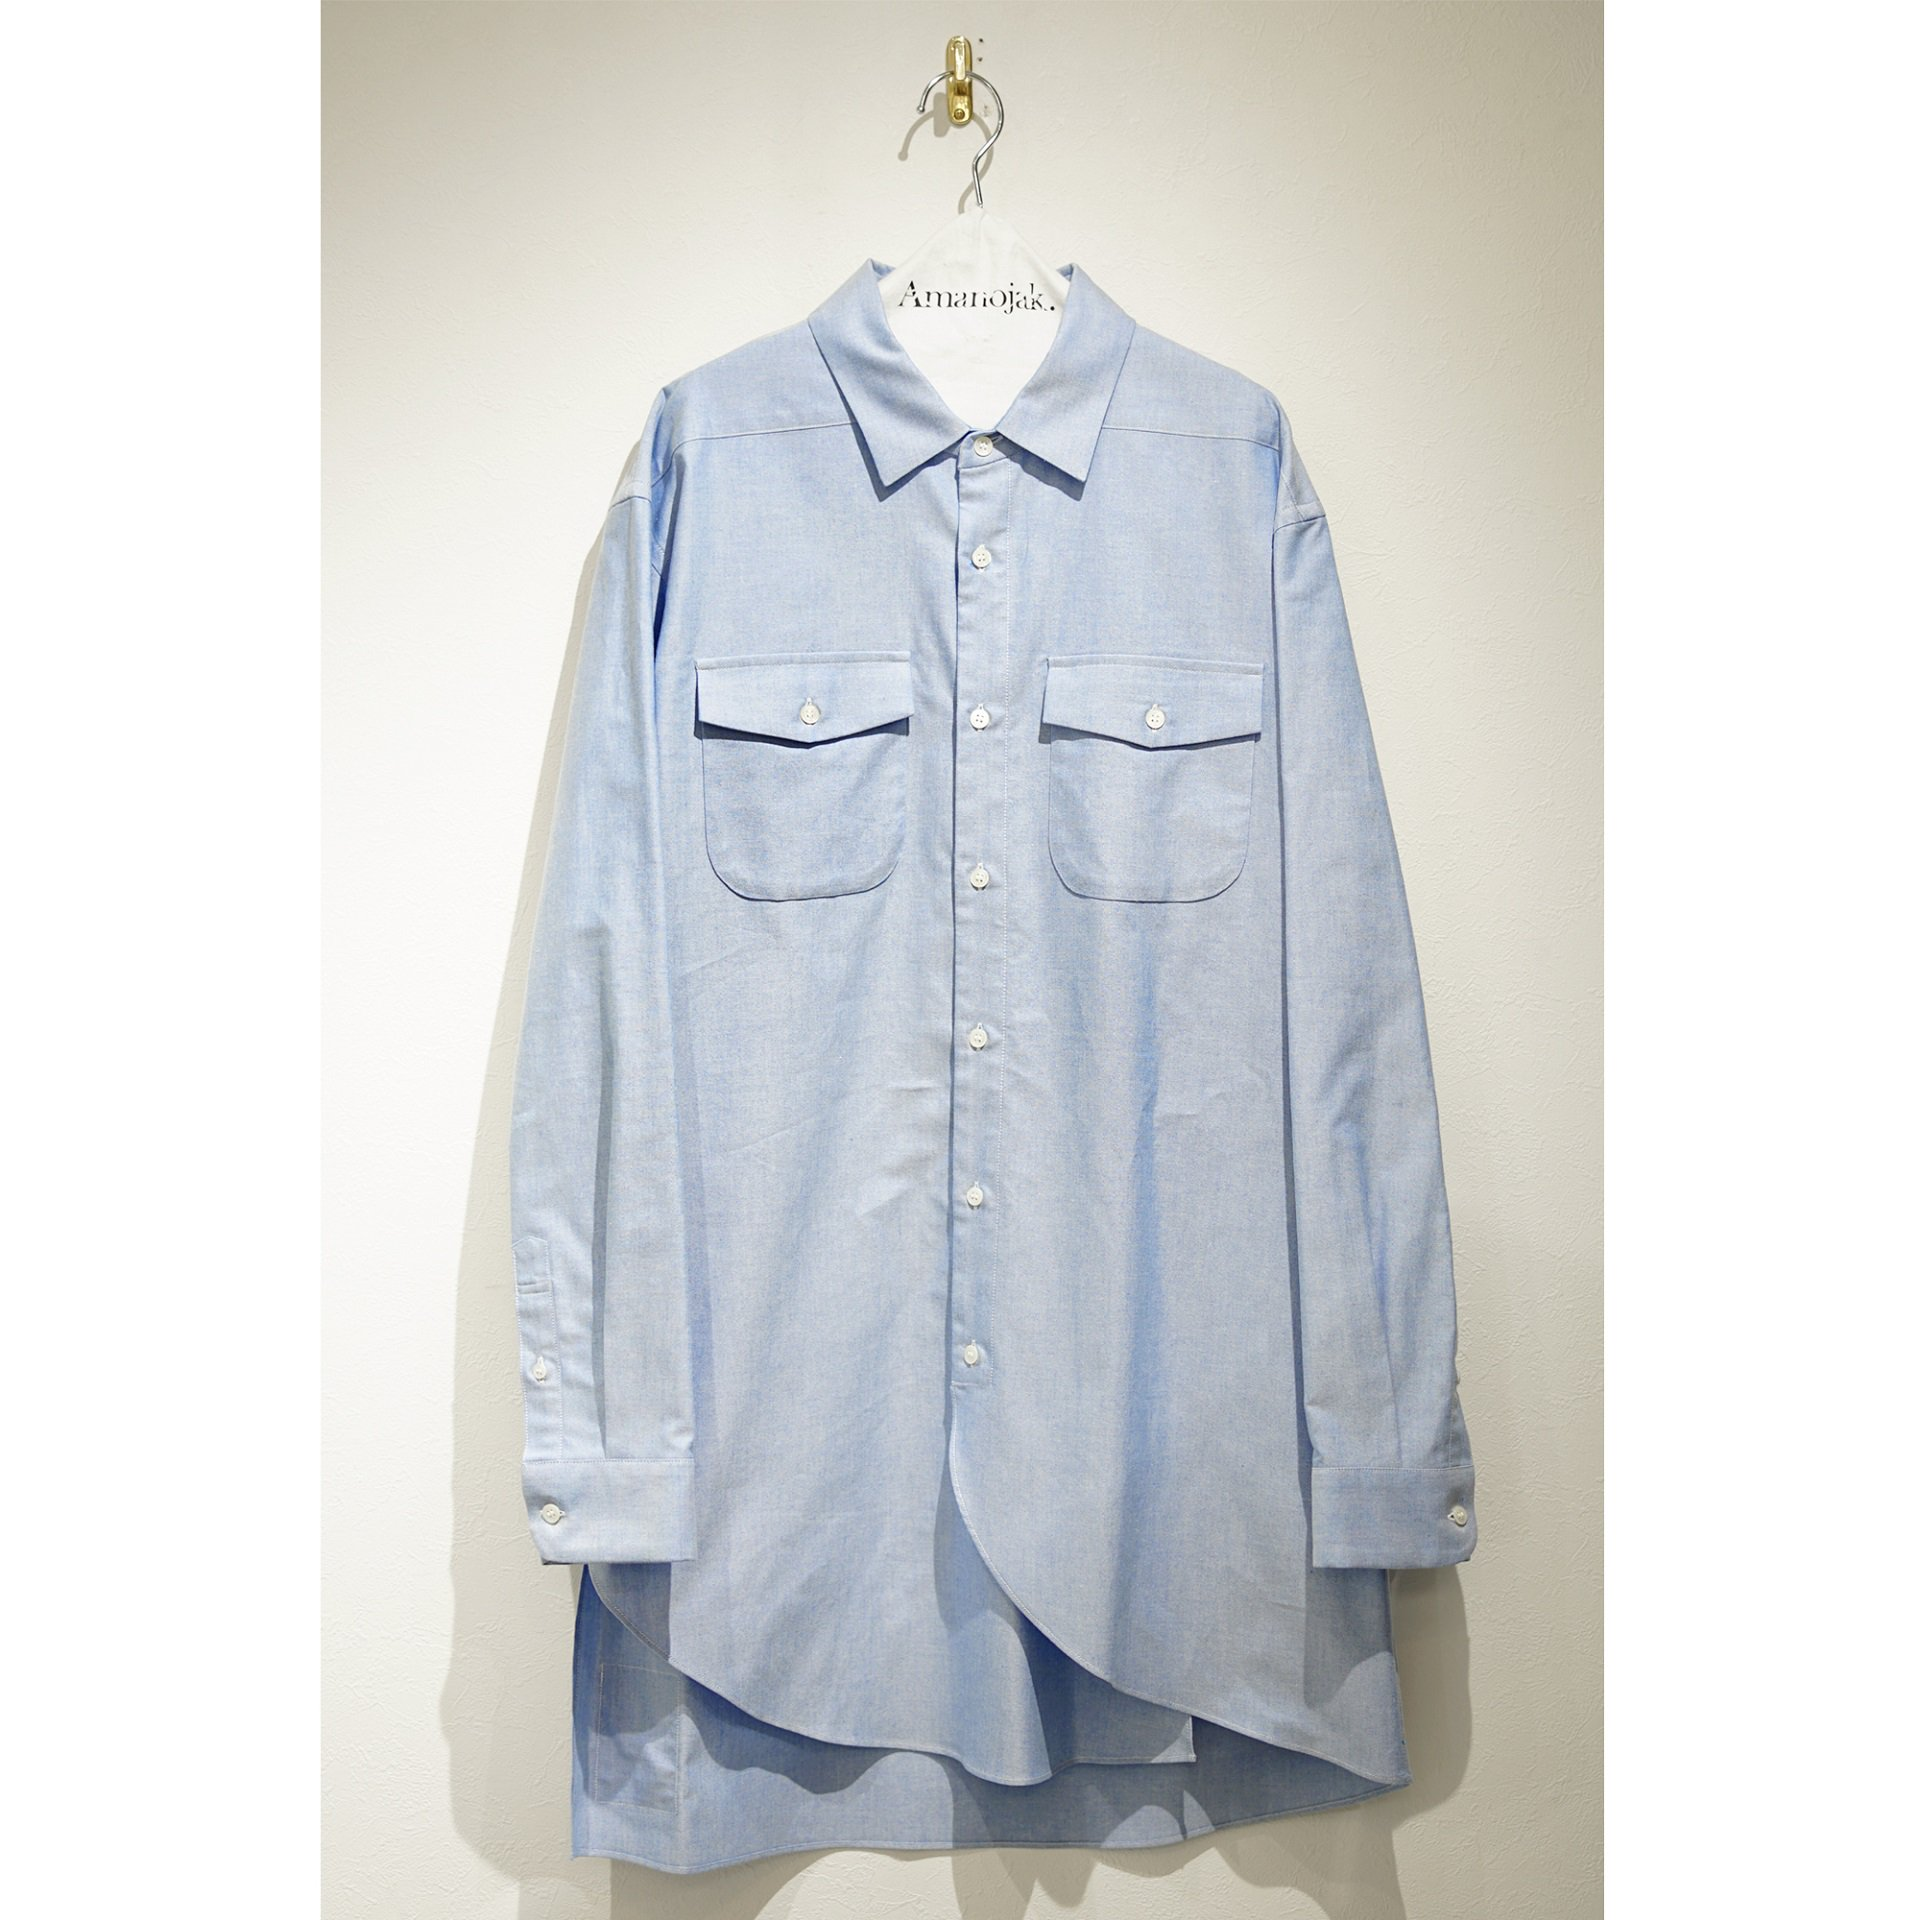 JULIEN DAVID-OXFORD YARN DYED DOBBY CLOTH LONG SHIRTS